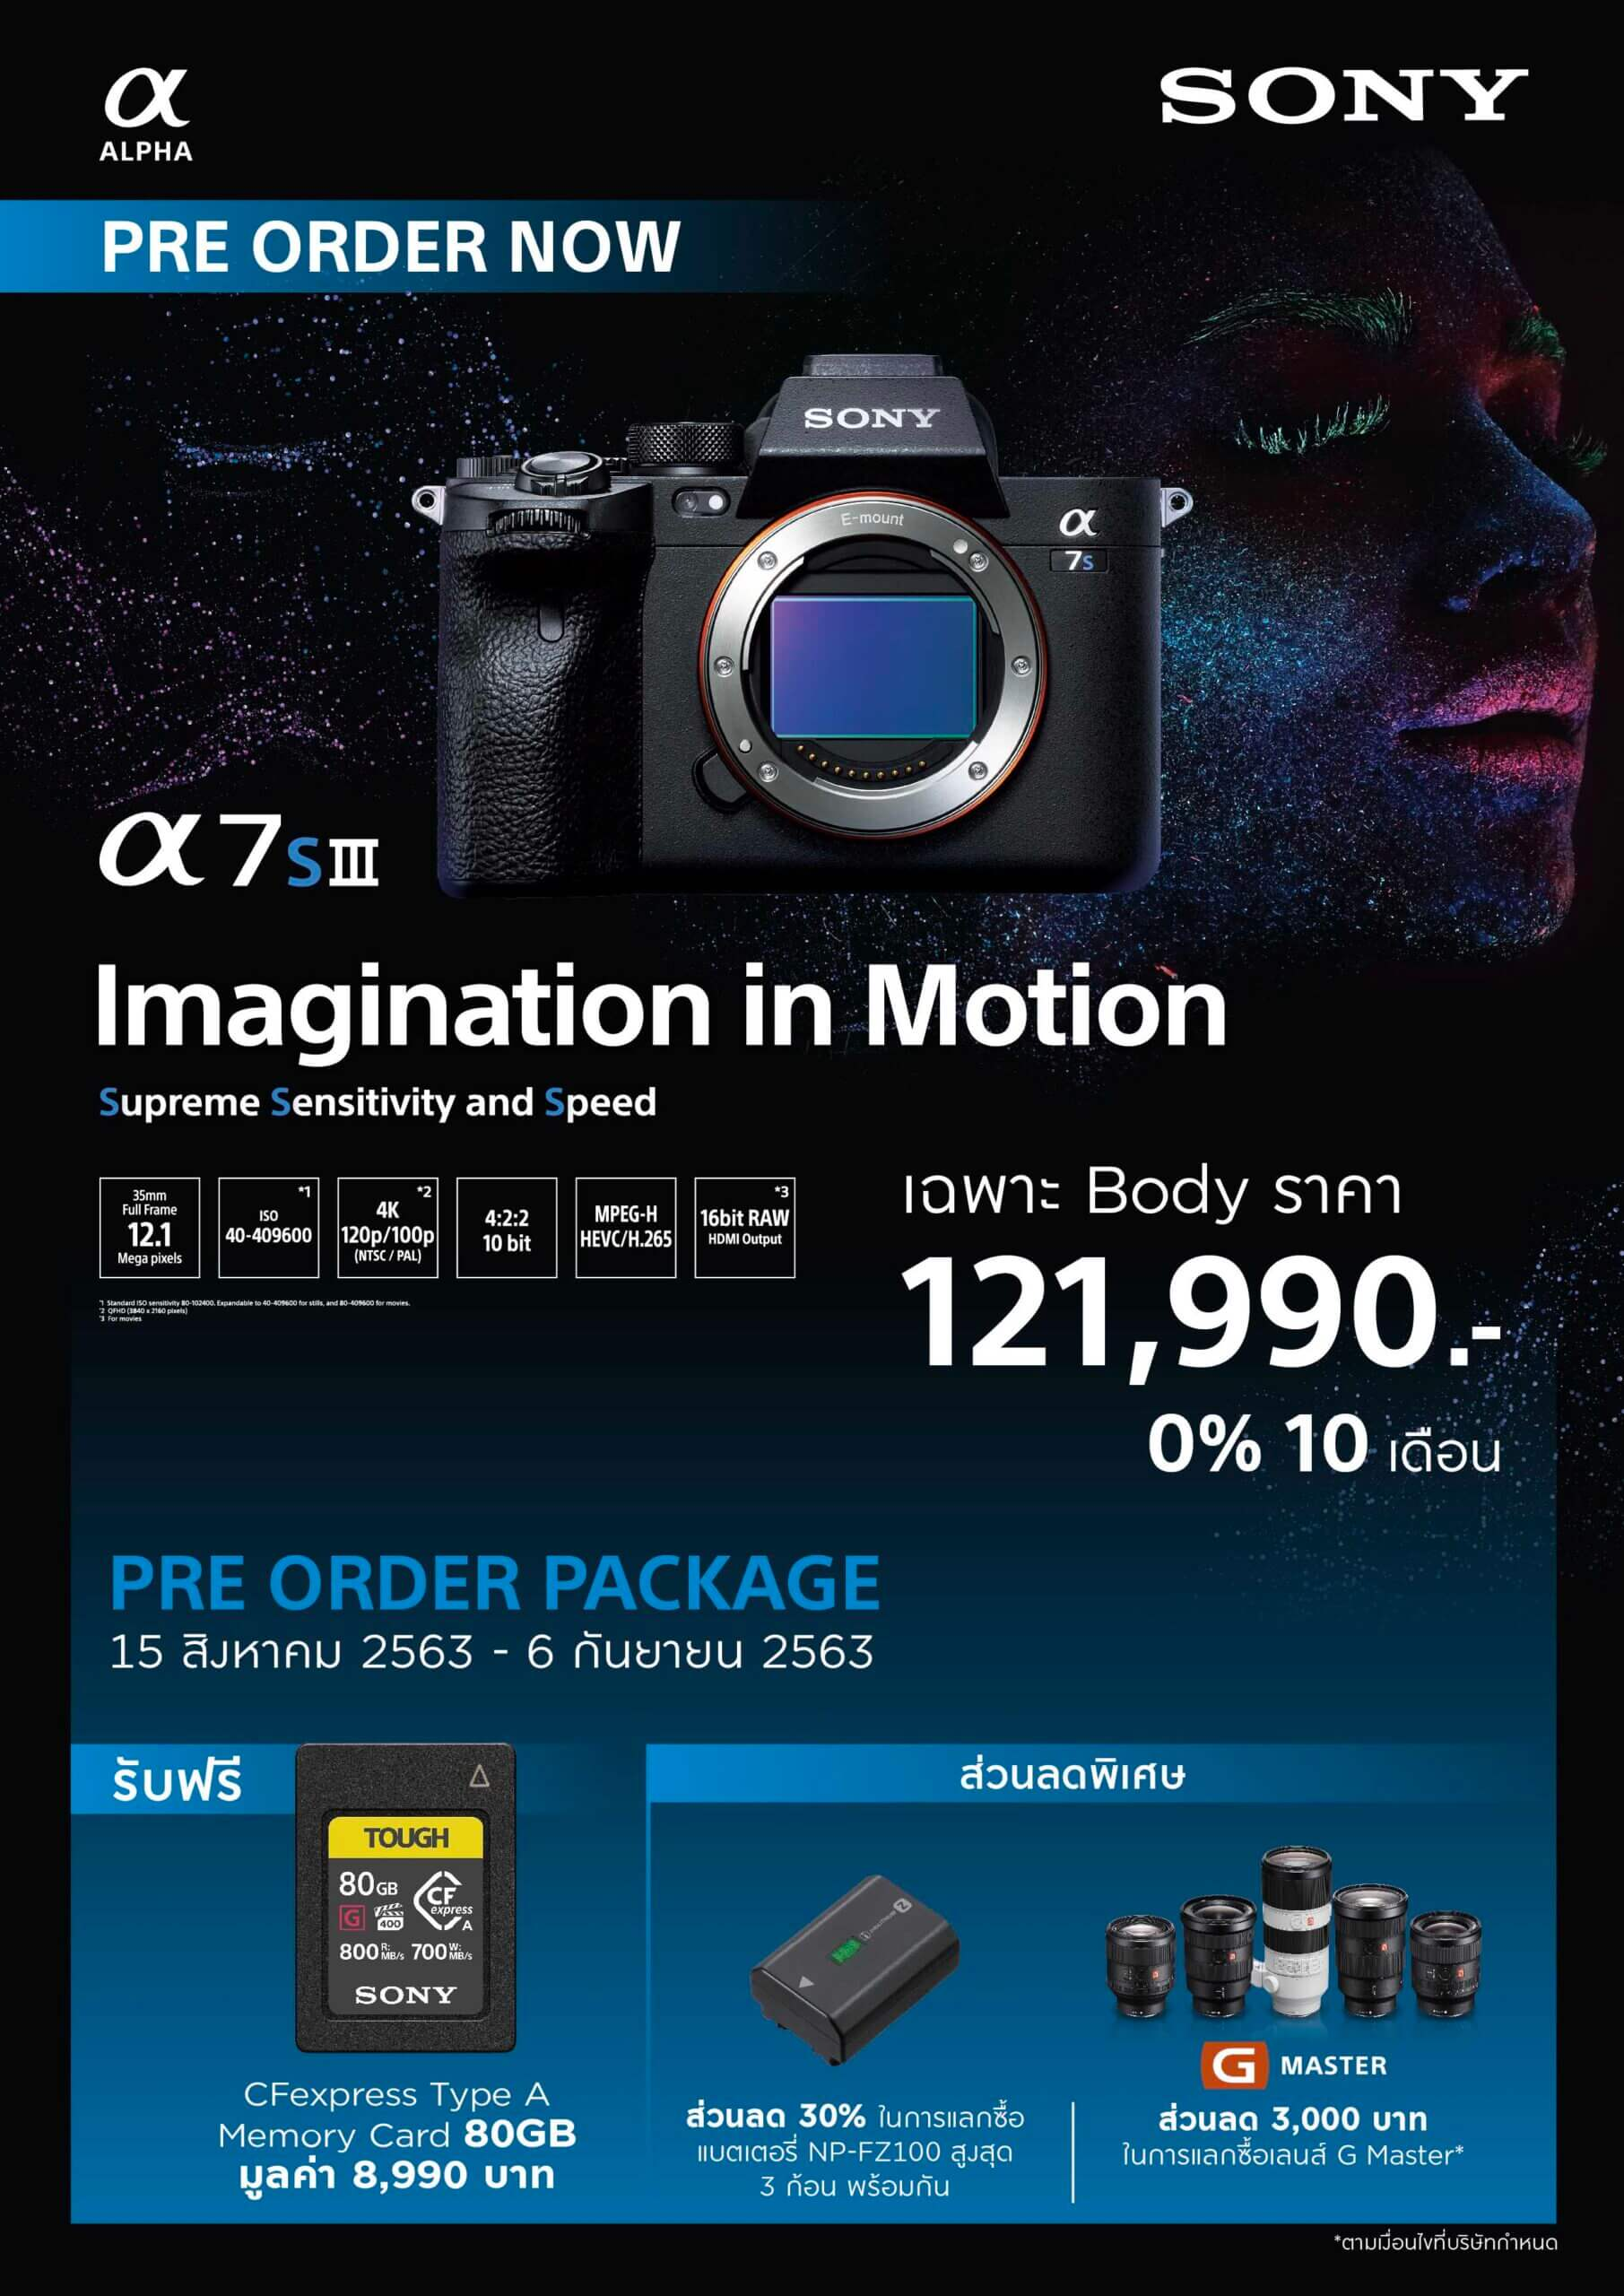 A7SIII Prebooking Nationwide Promotion scaled